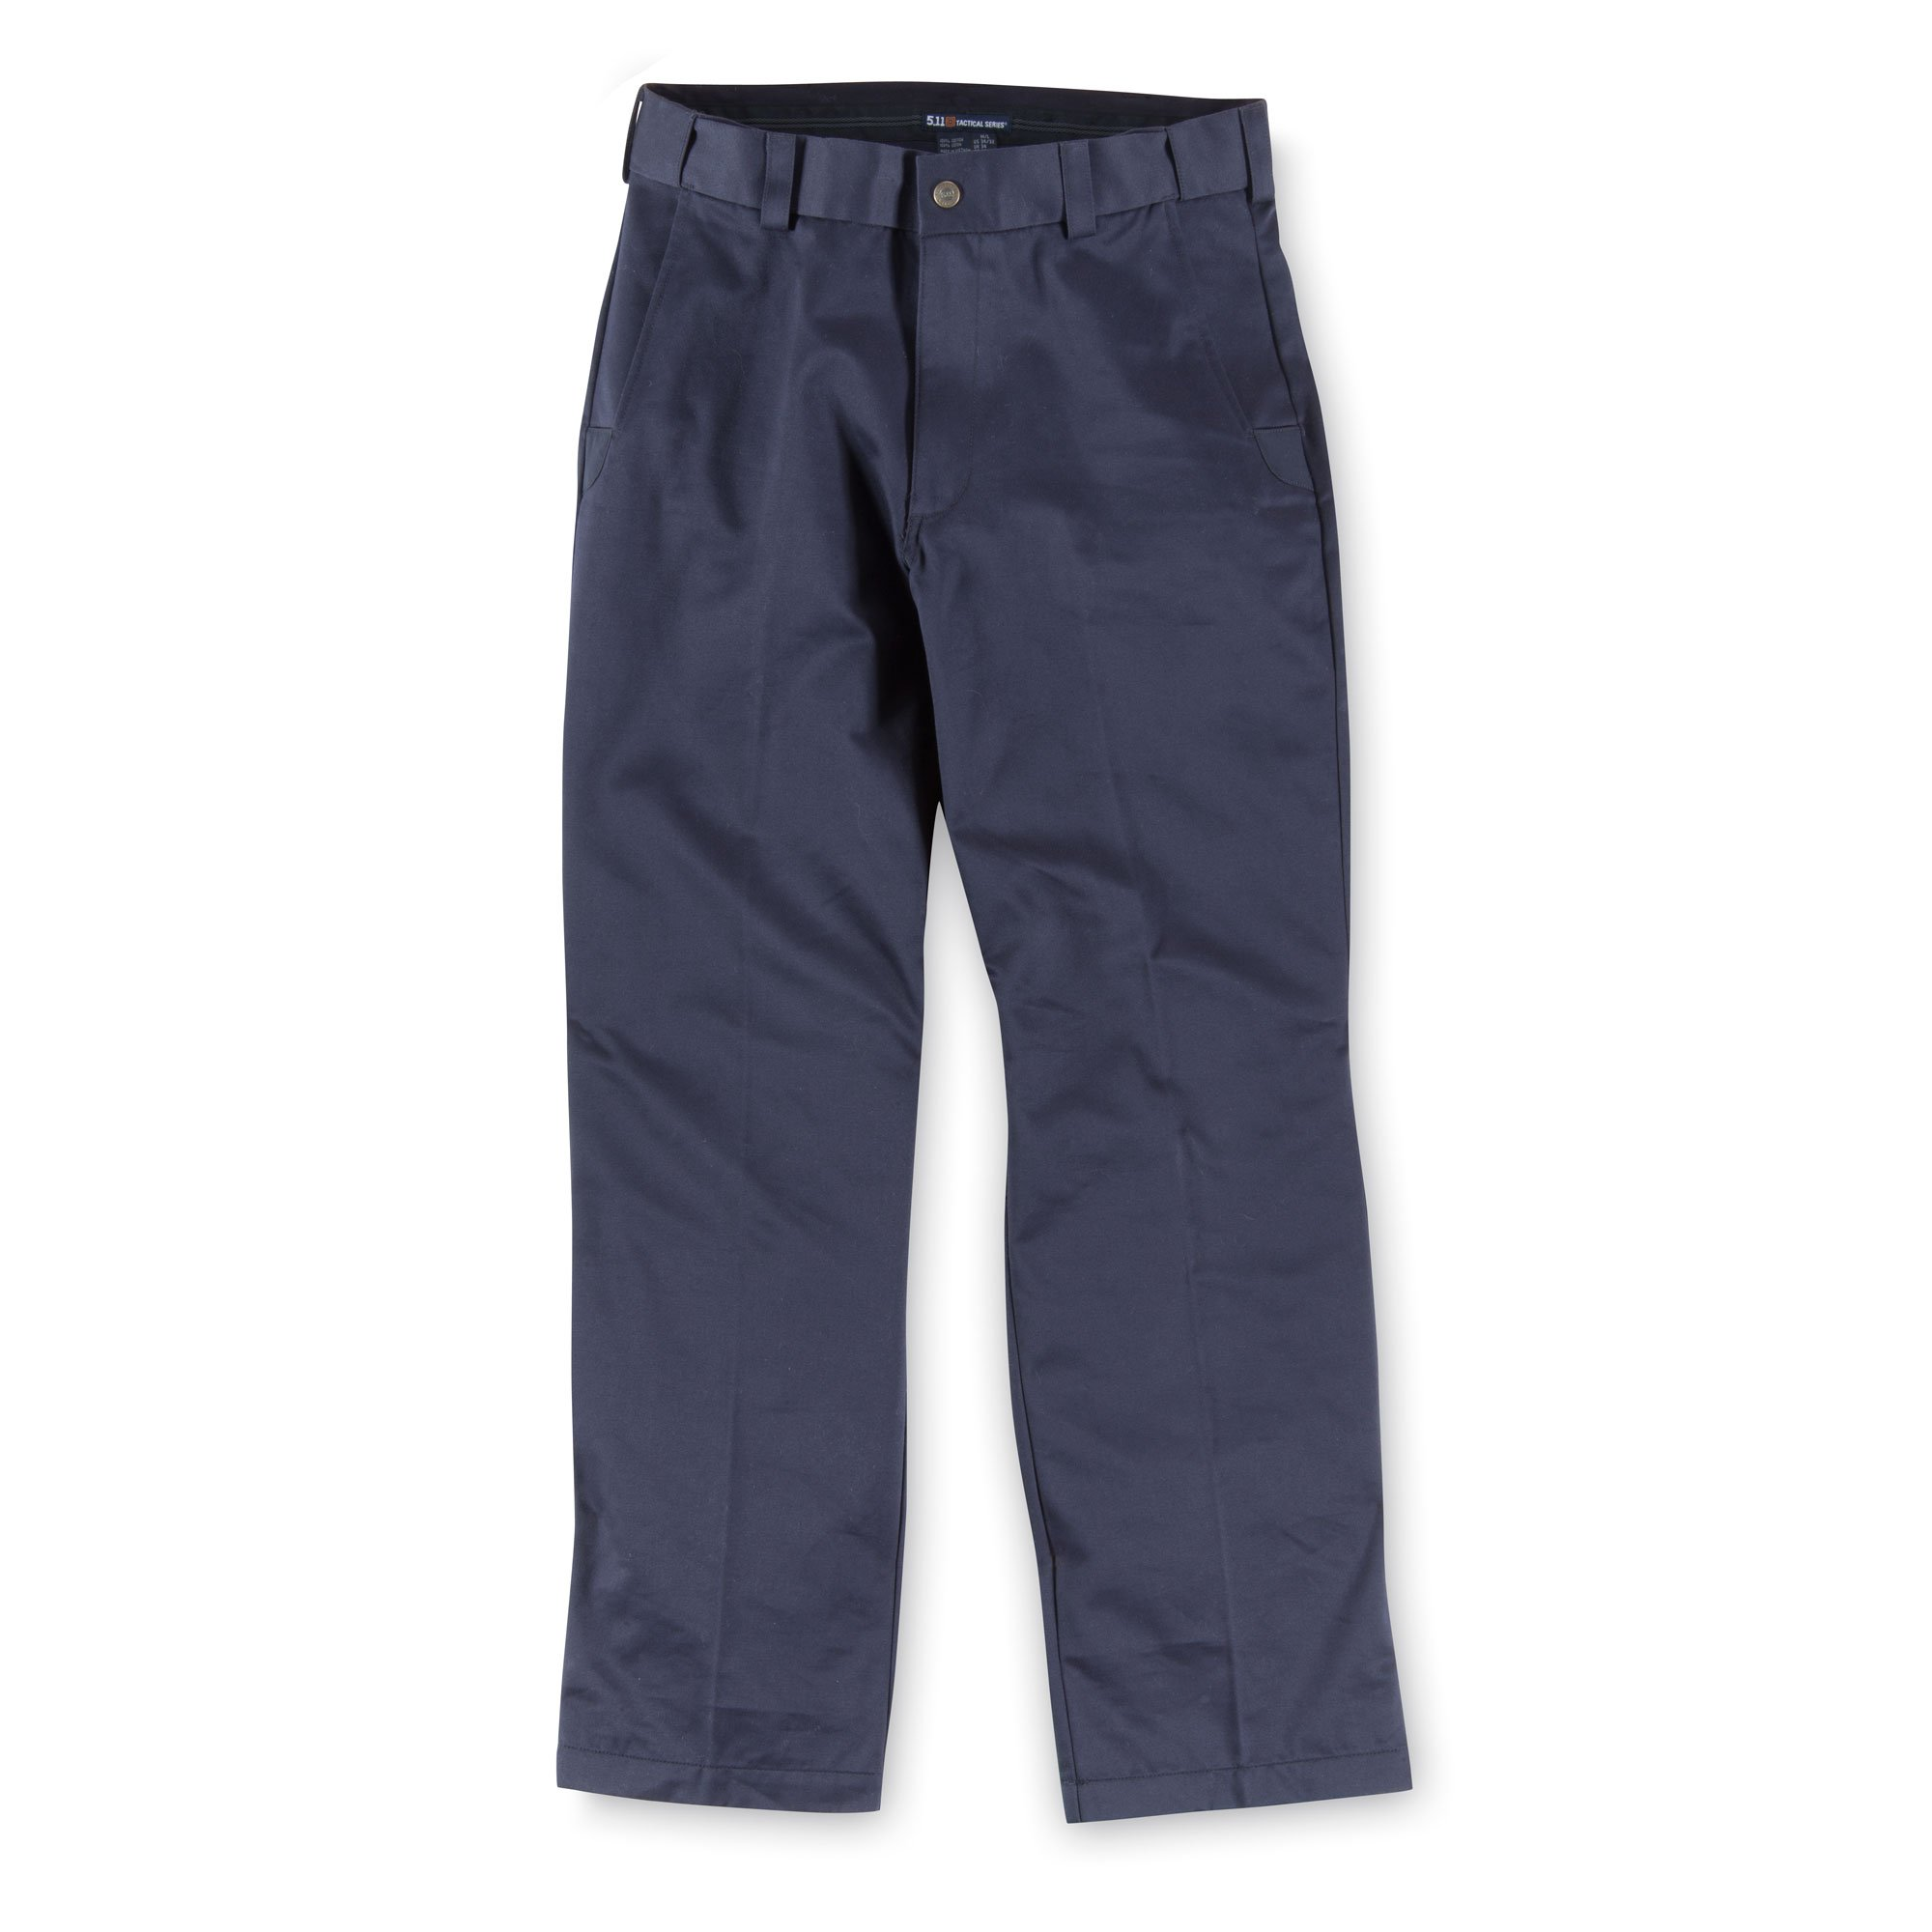 5.11 Tactical Company Pant, Fire Navy, W28-L30